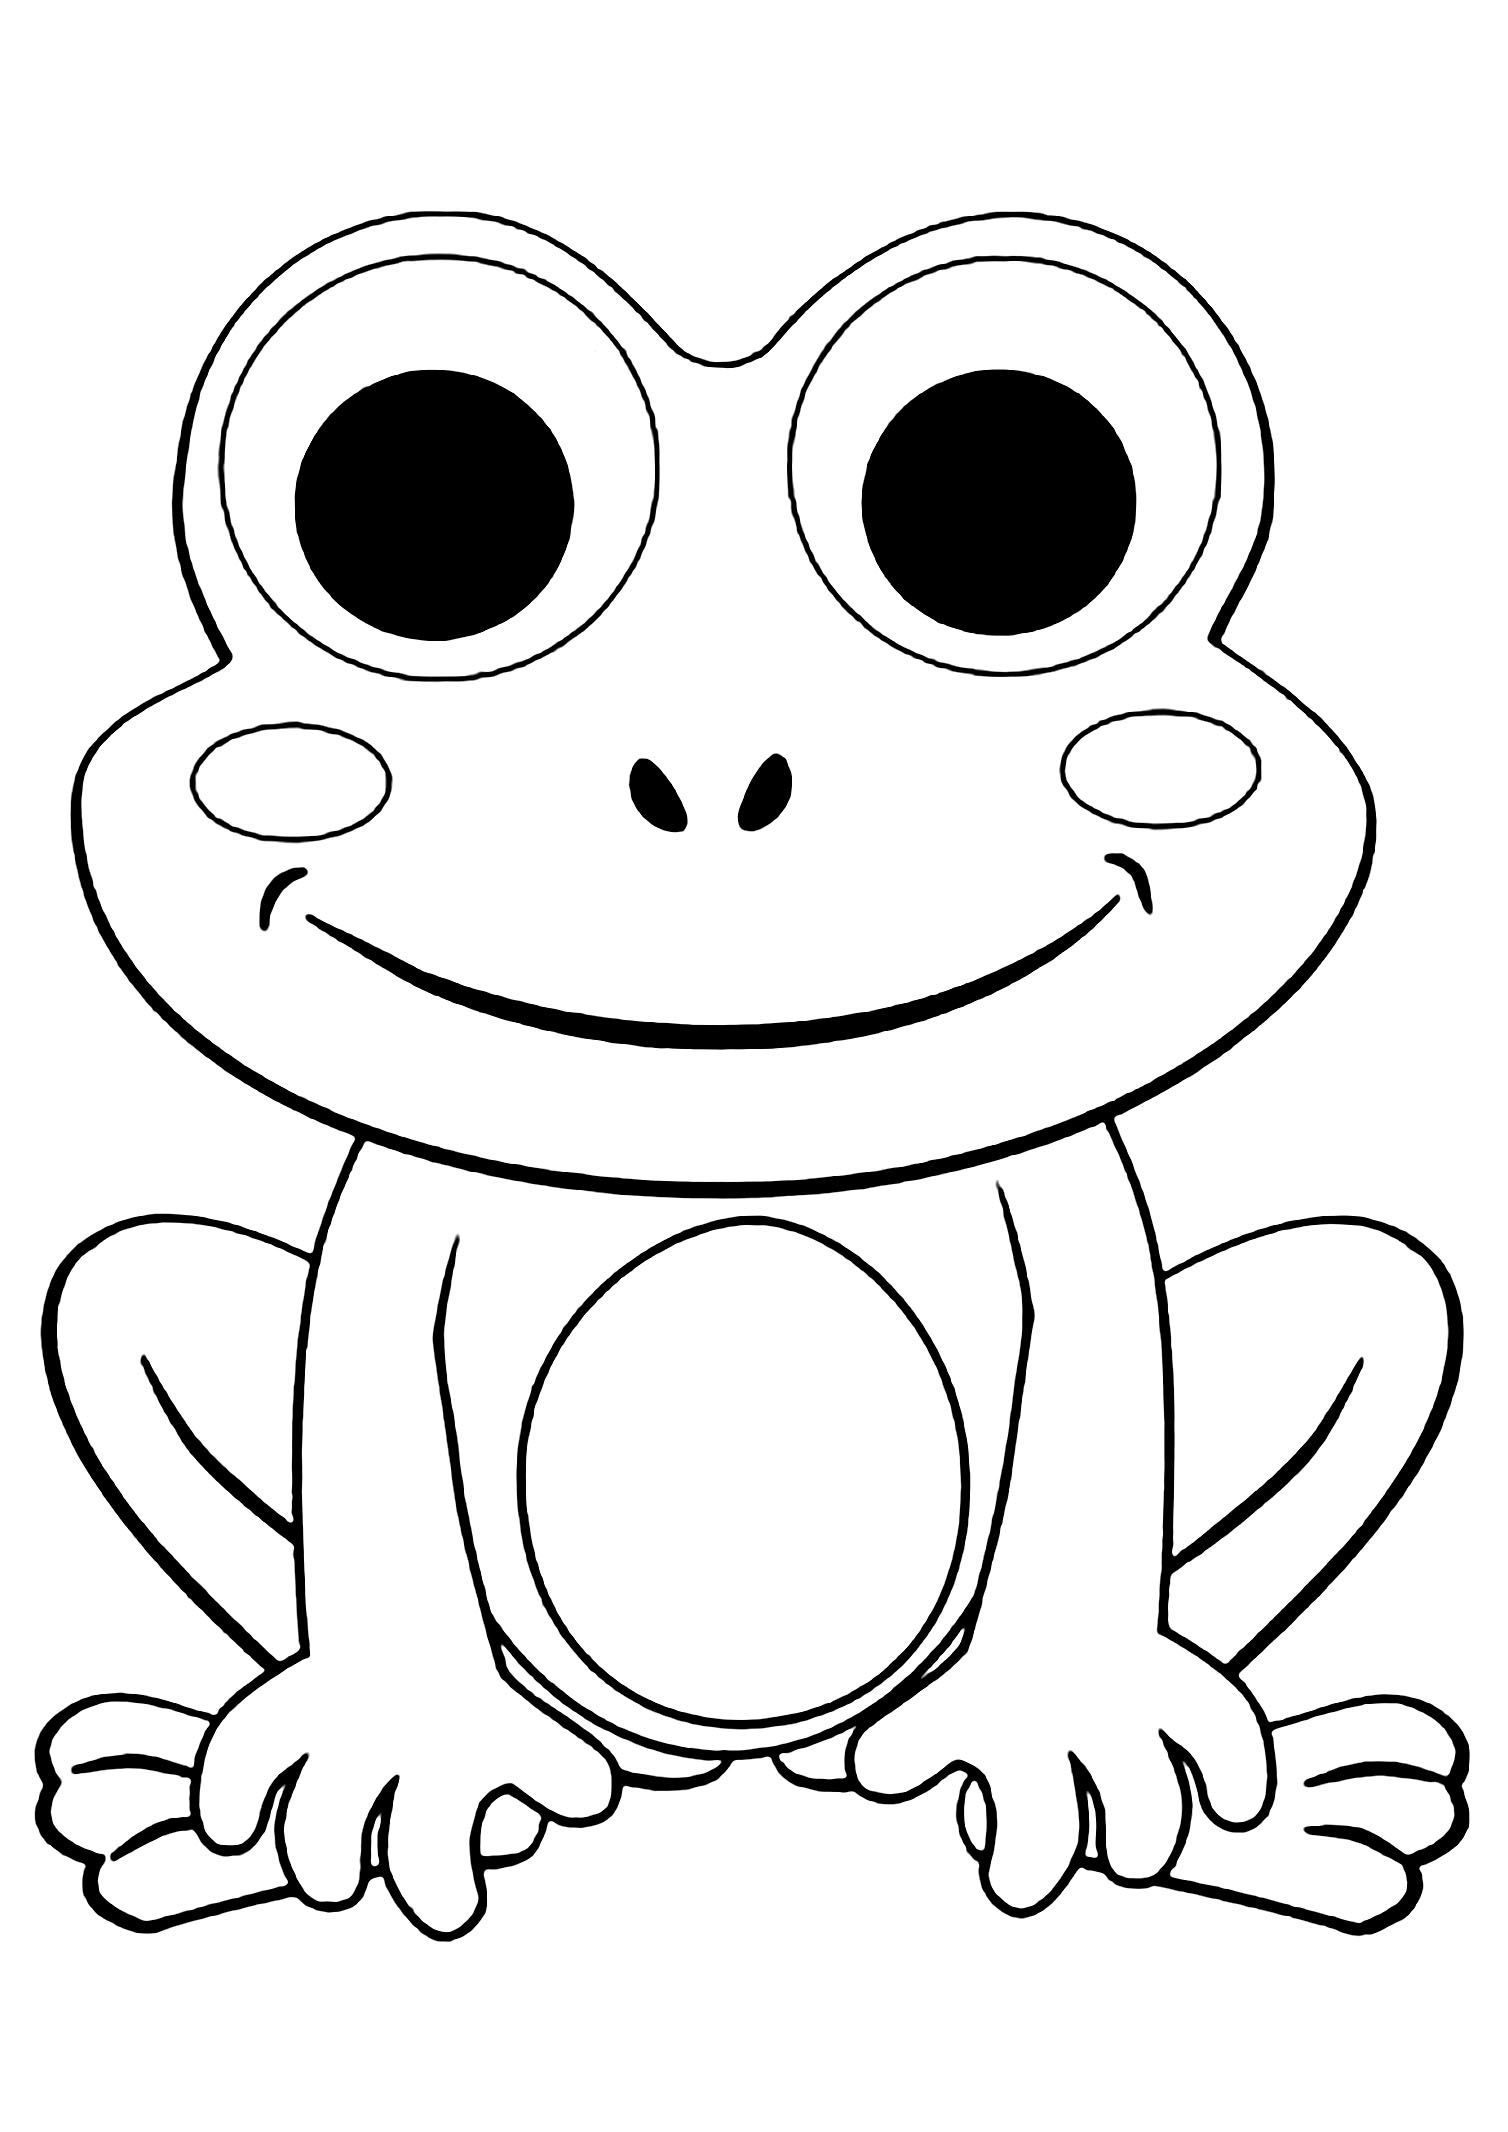 pictures of frogs to color frogs to print for free printable frogs coloring page to color of to pictures frogs